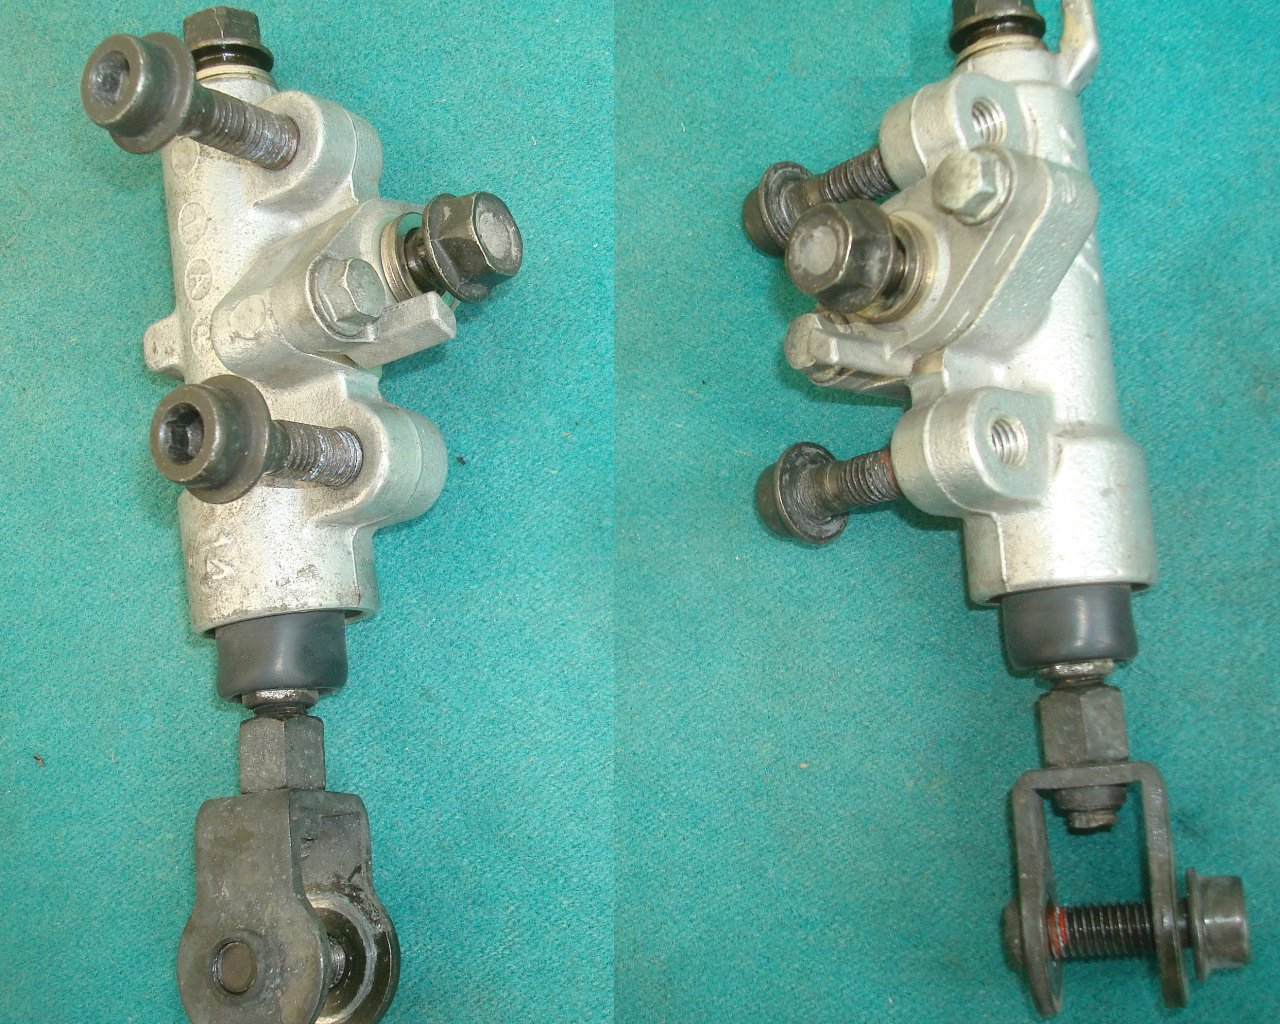 06 to 17 CASE, PLUNGER 51530-MCA-A61  anti-dive valve GL1800